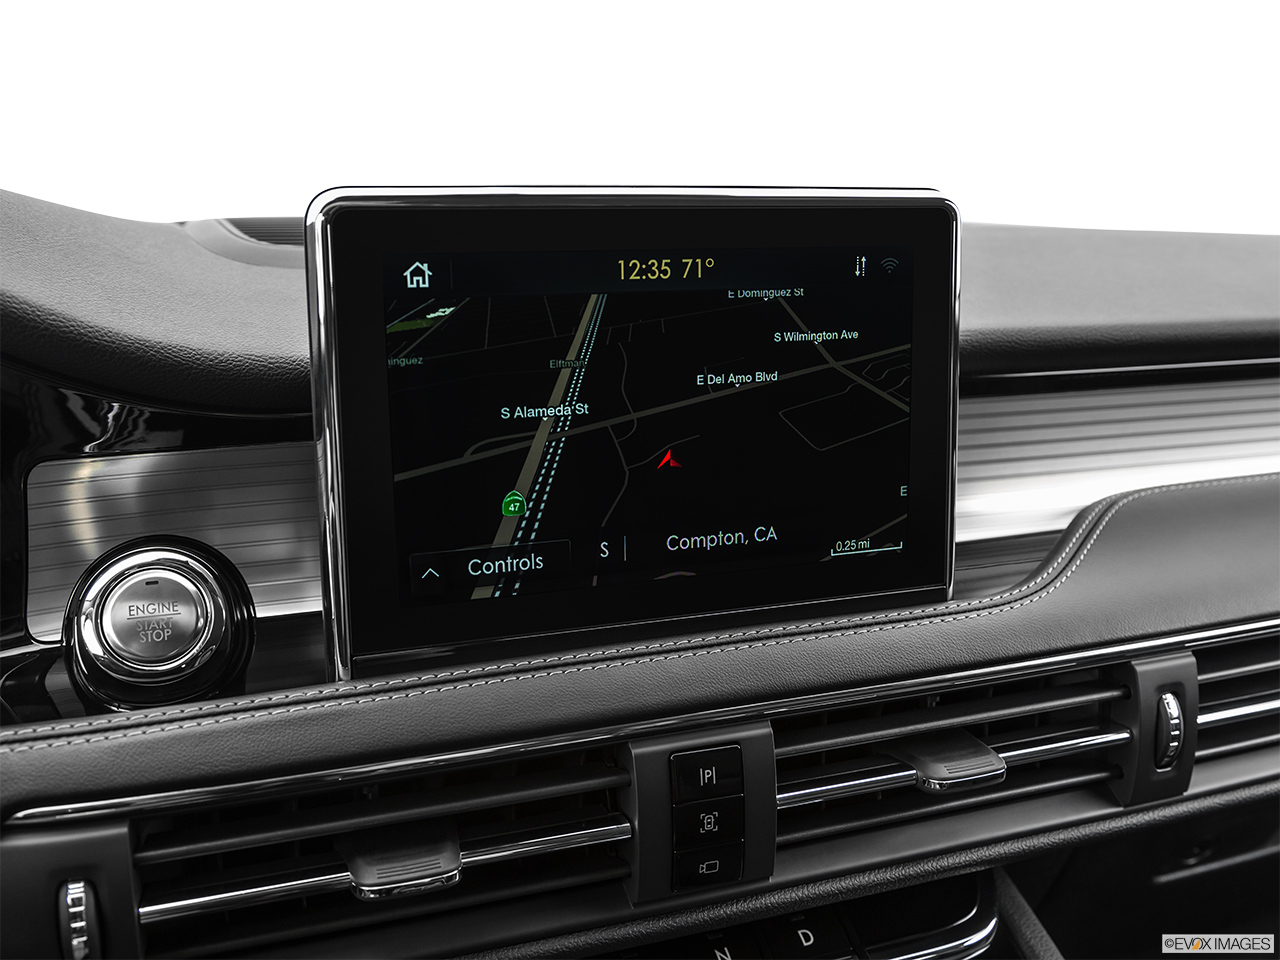 2020 Lincoln Corsair Standard Driver position view of navigation system.